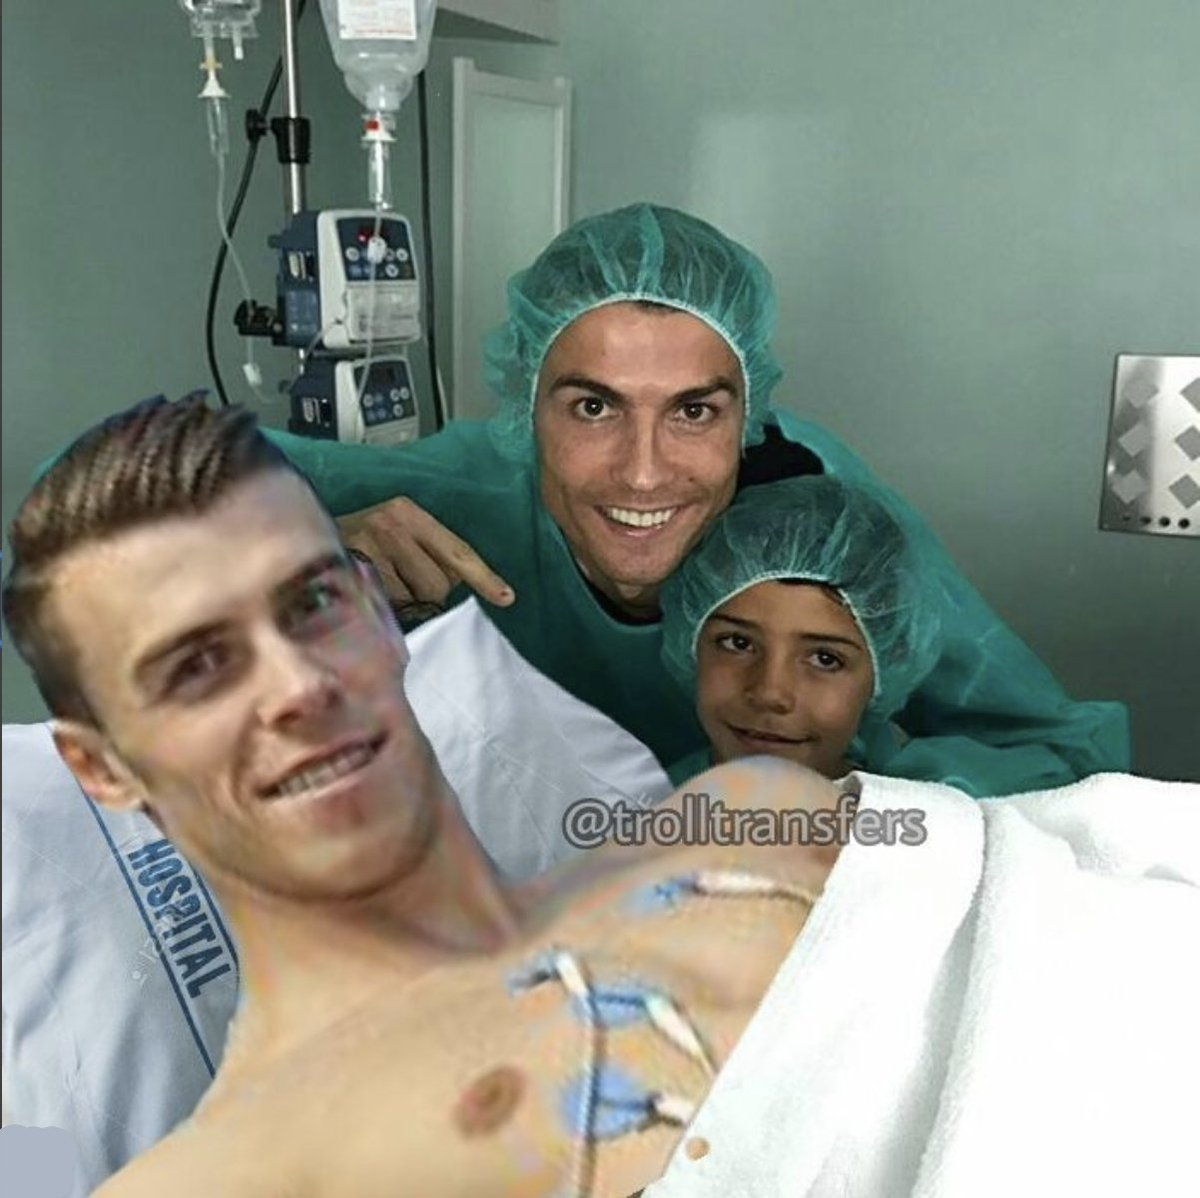 RT @TrollFootball: Ronaldo took his son to visit uncle Gareth Bale in hospital https://t.co/uztOcMeNzg